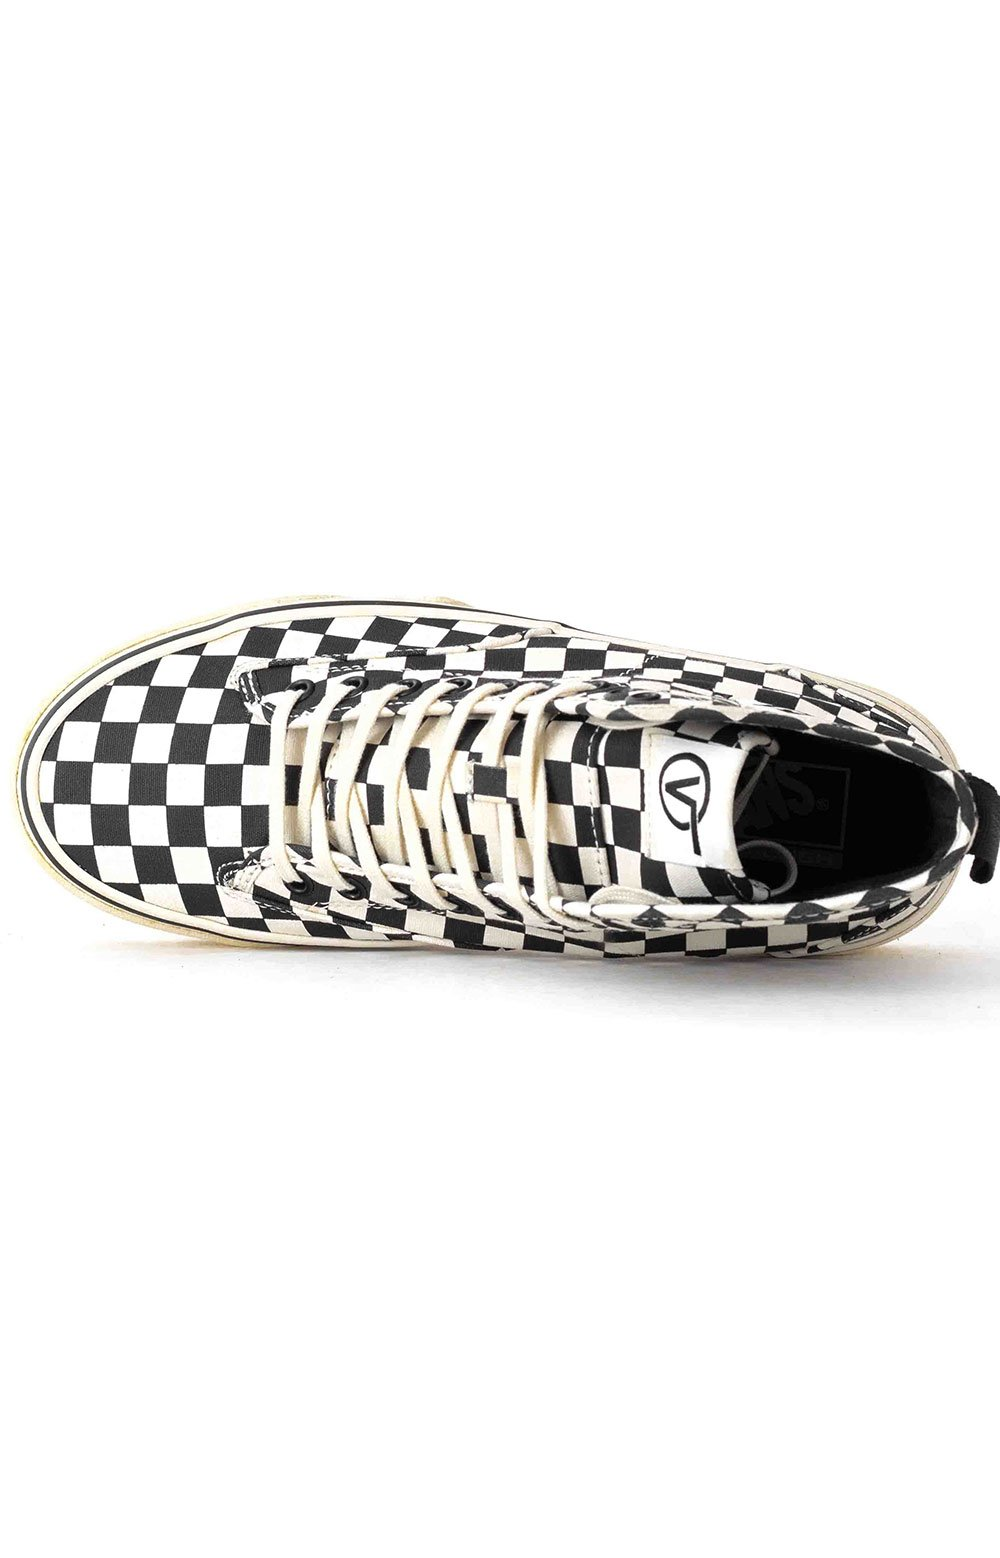 (4P3kTUY) Canvas Sentry WC Shoe - Checkerboard 2